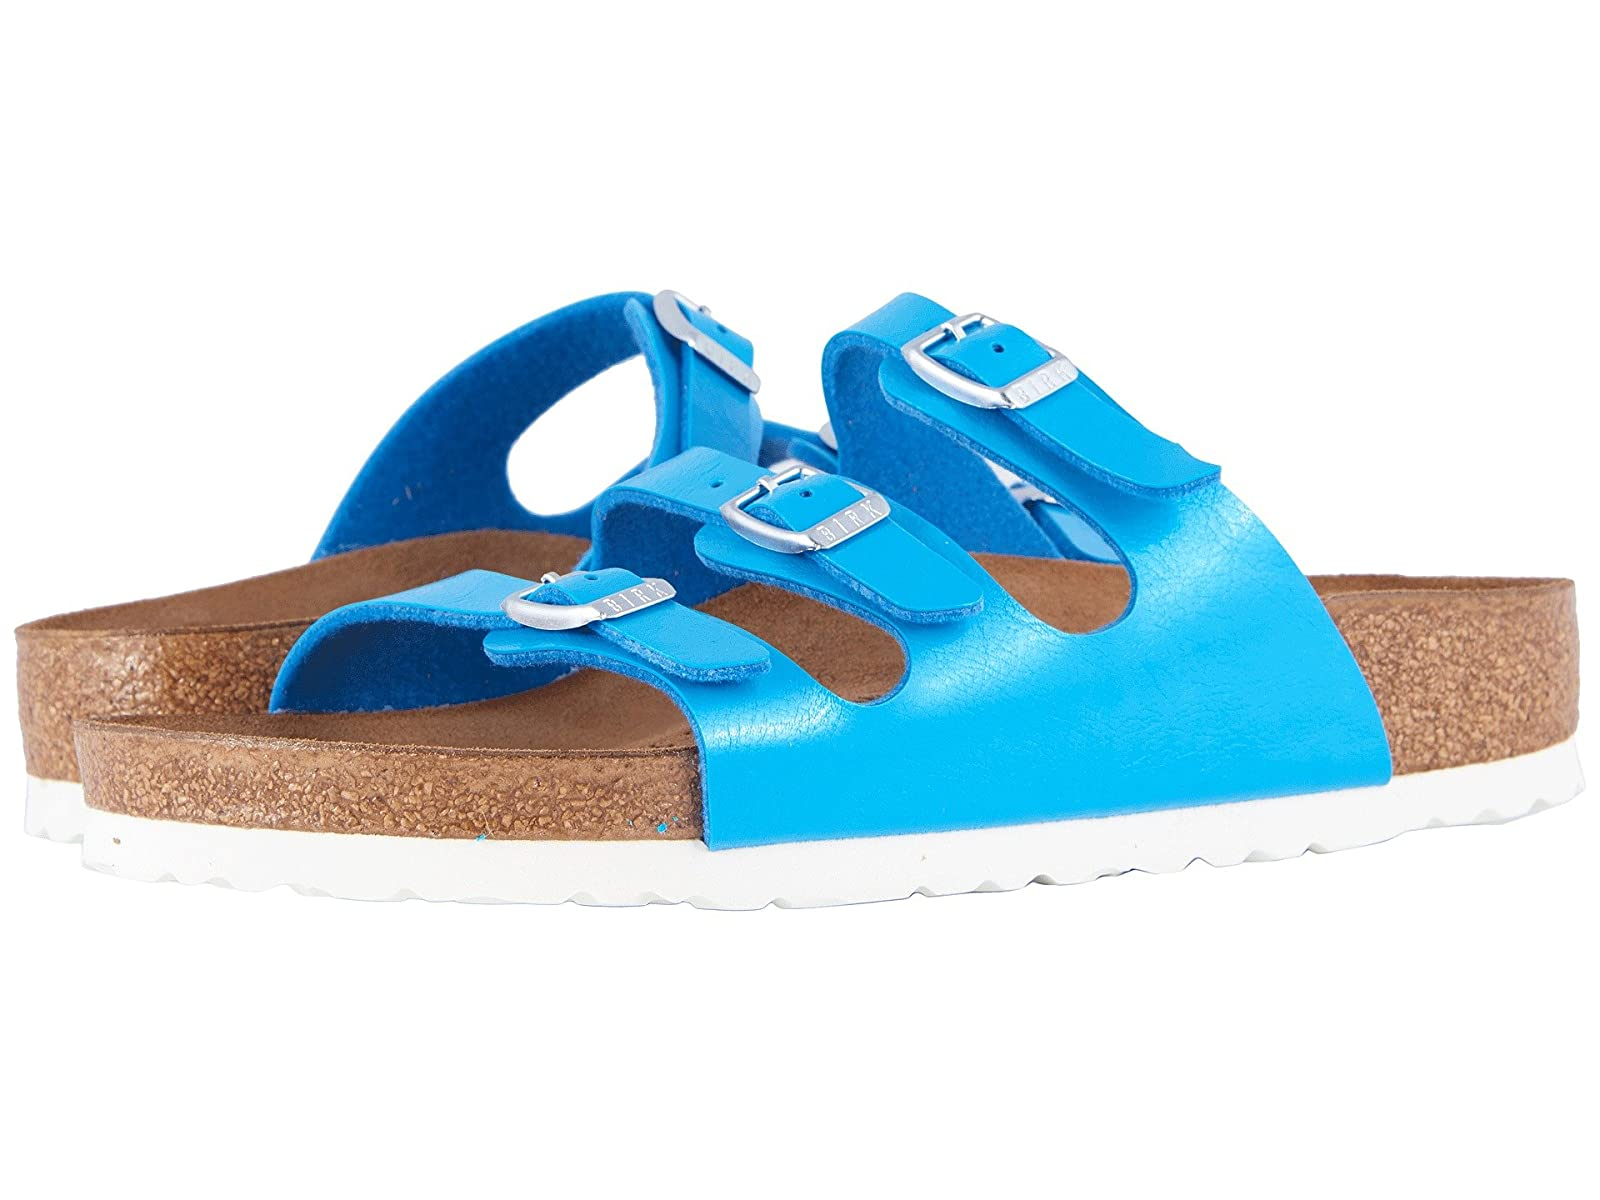 Birkenstock FloridaComfortable and distinctive shoes